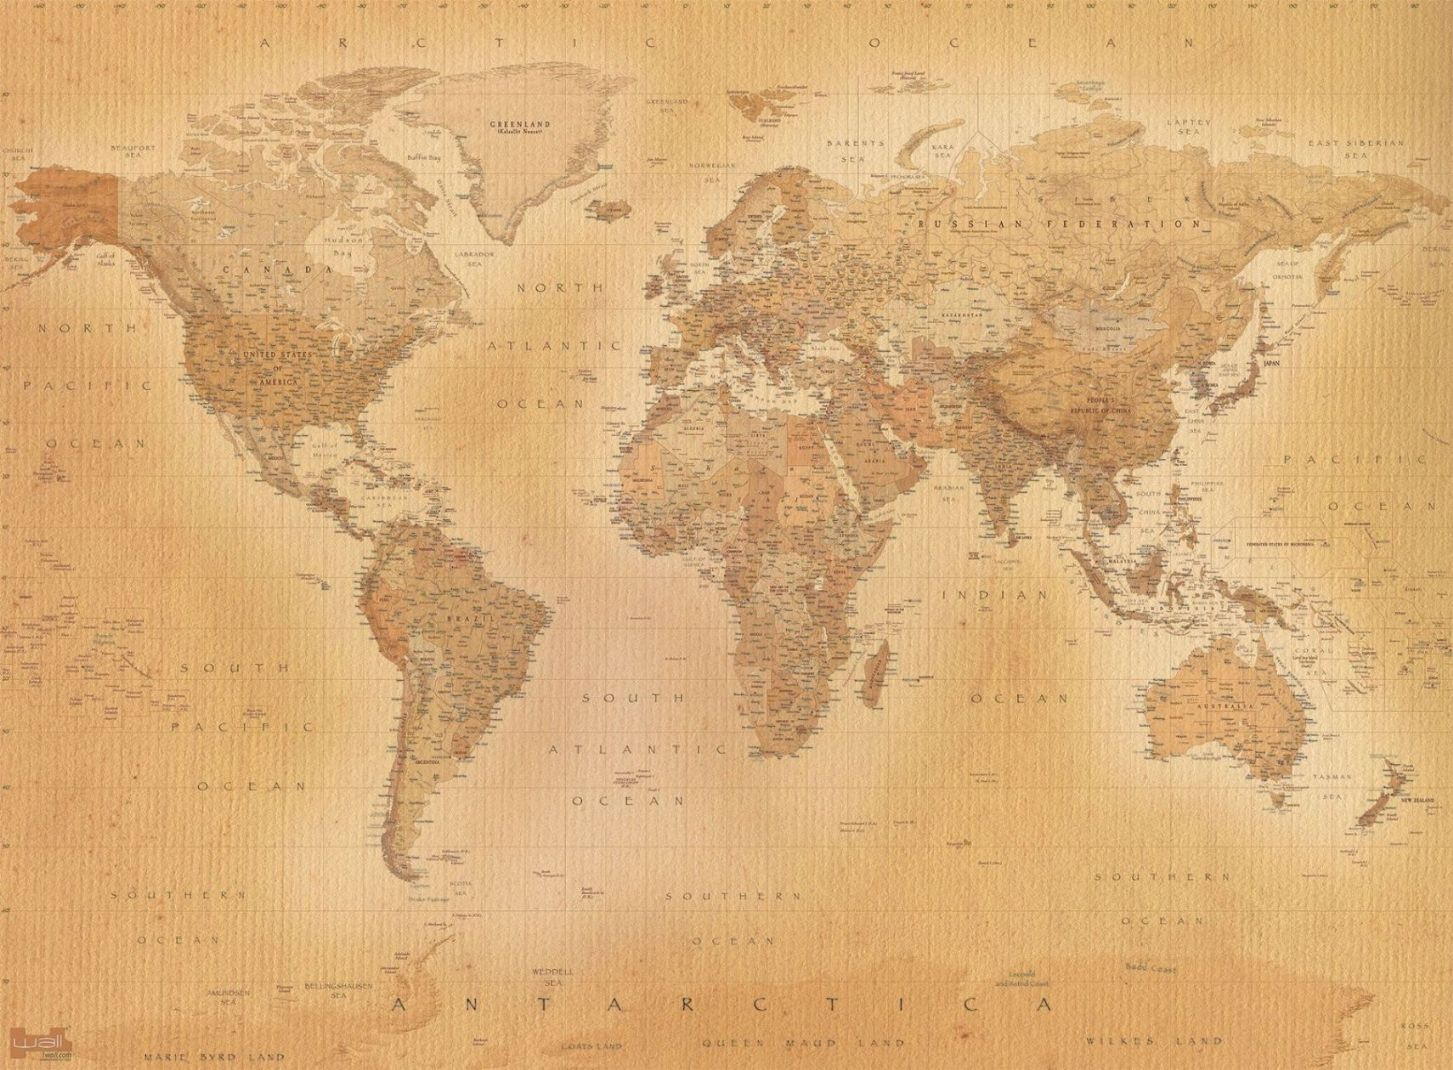 Wall mural wallpaper 315x232cm Old style Map of the World home walls 1453x1070